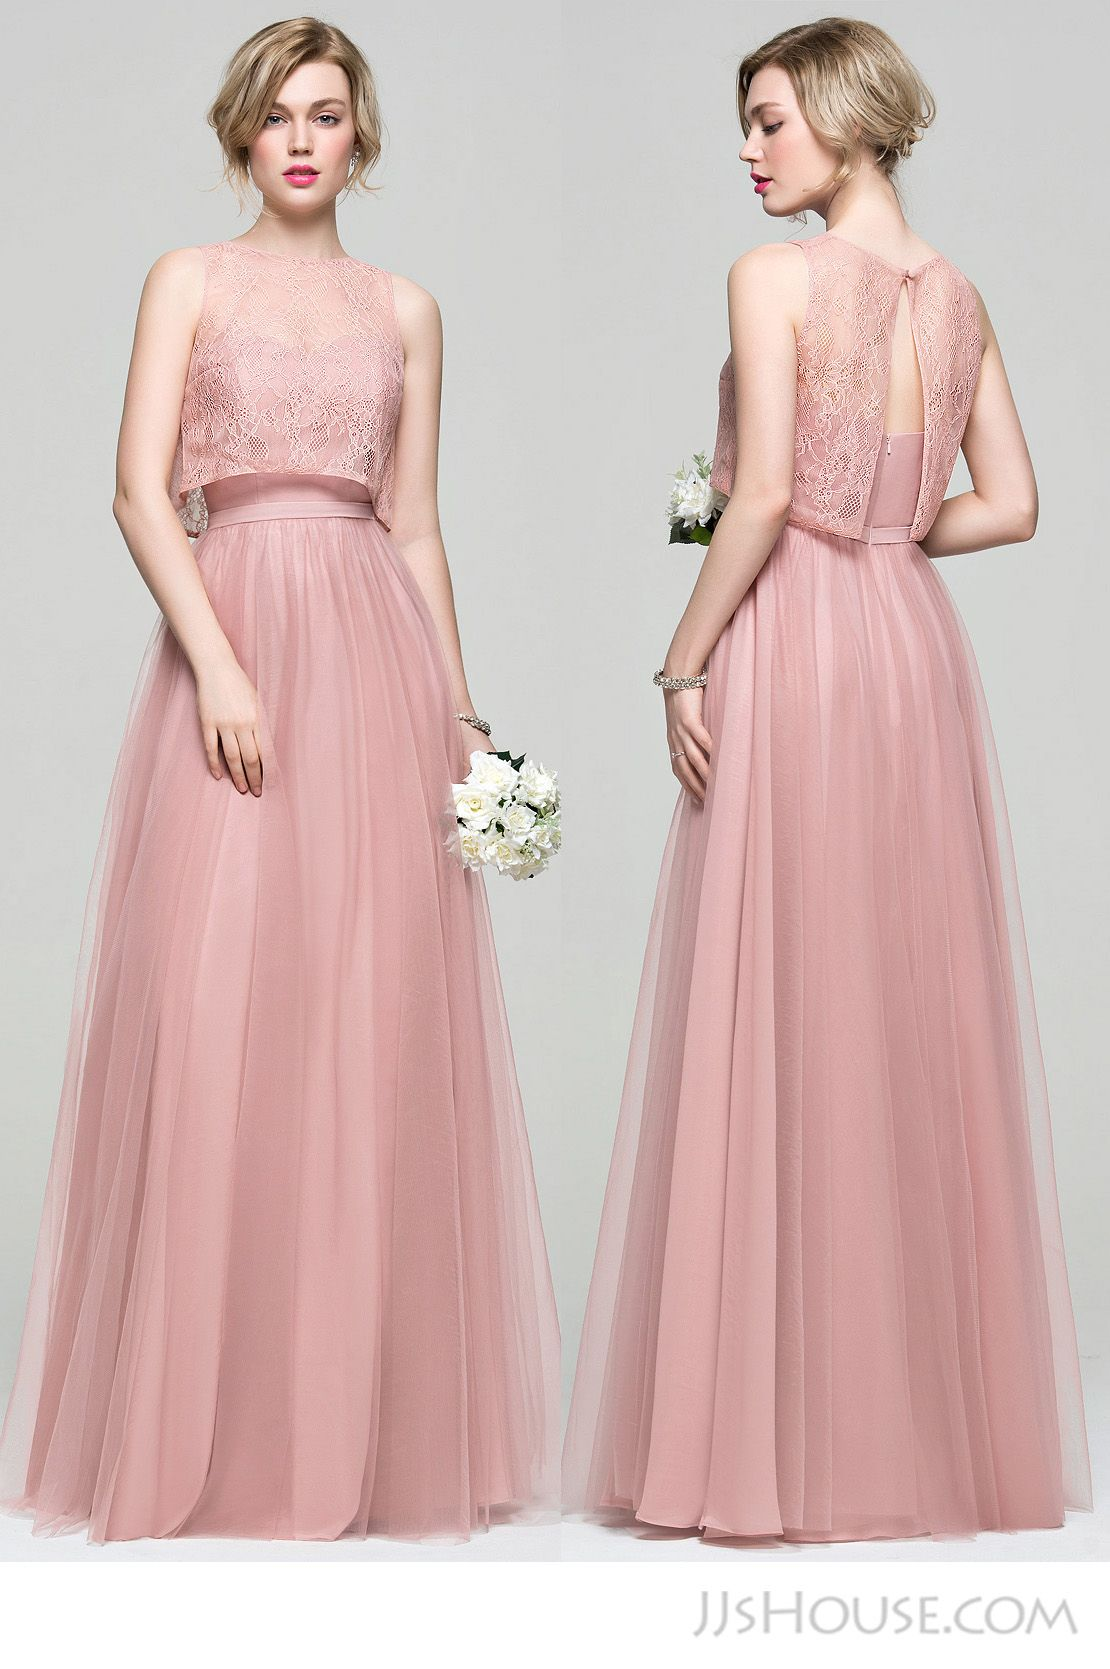 Elegant bridesmaid dress. #JJsHouse | Vestidos de noche | Pinterest ...